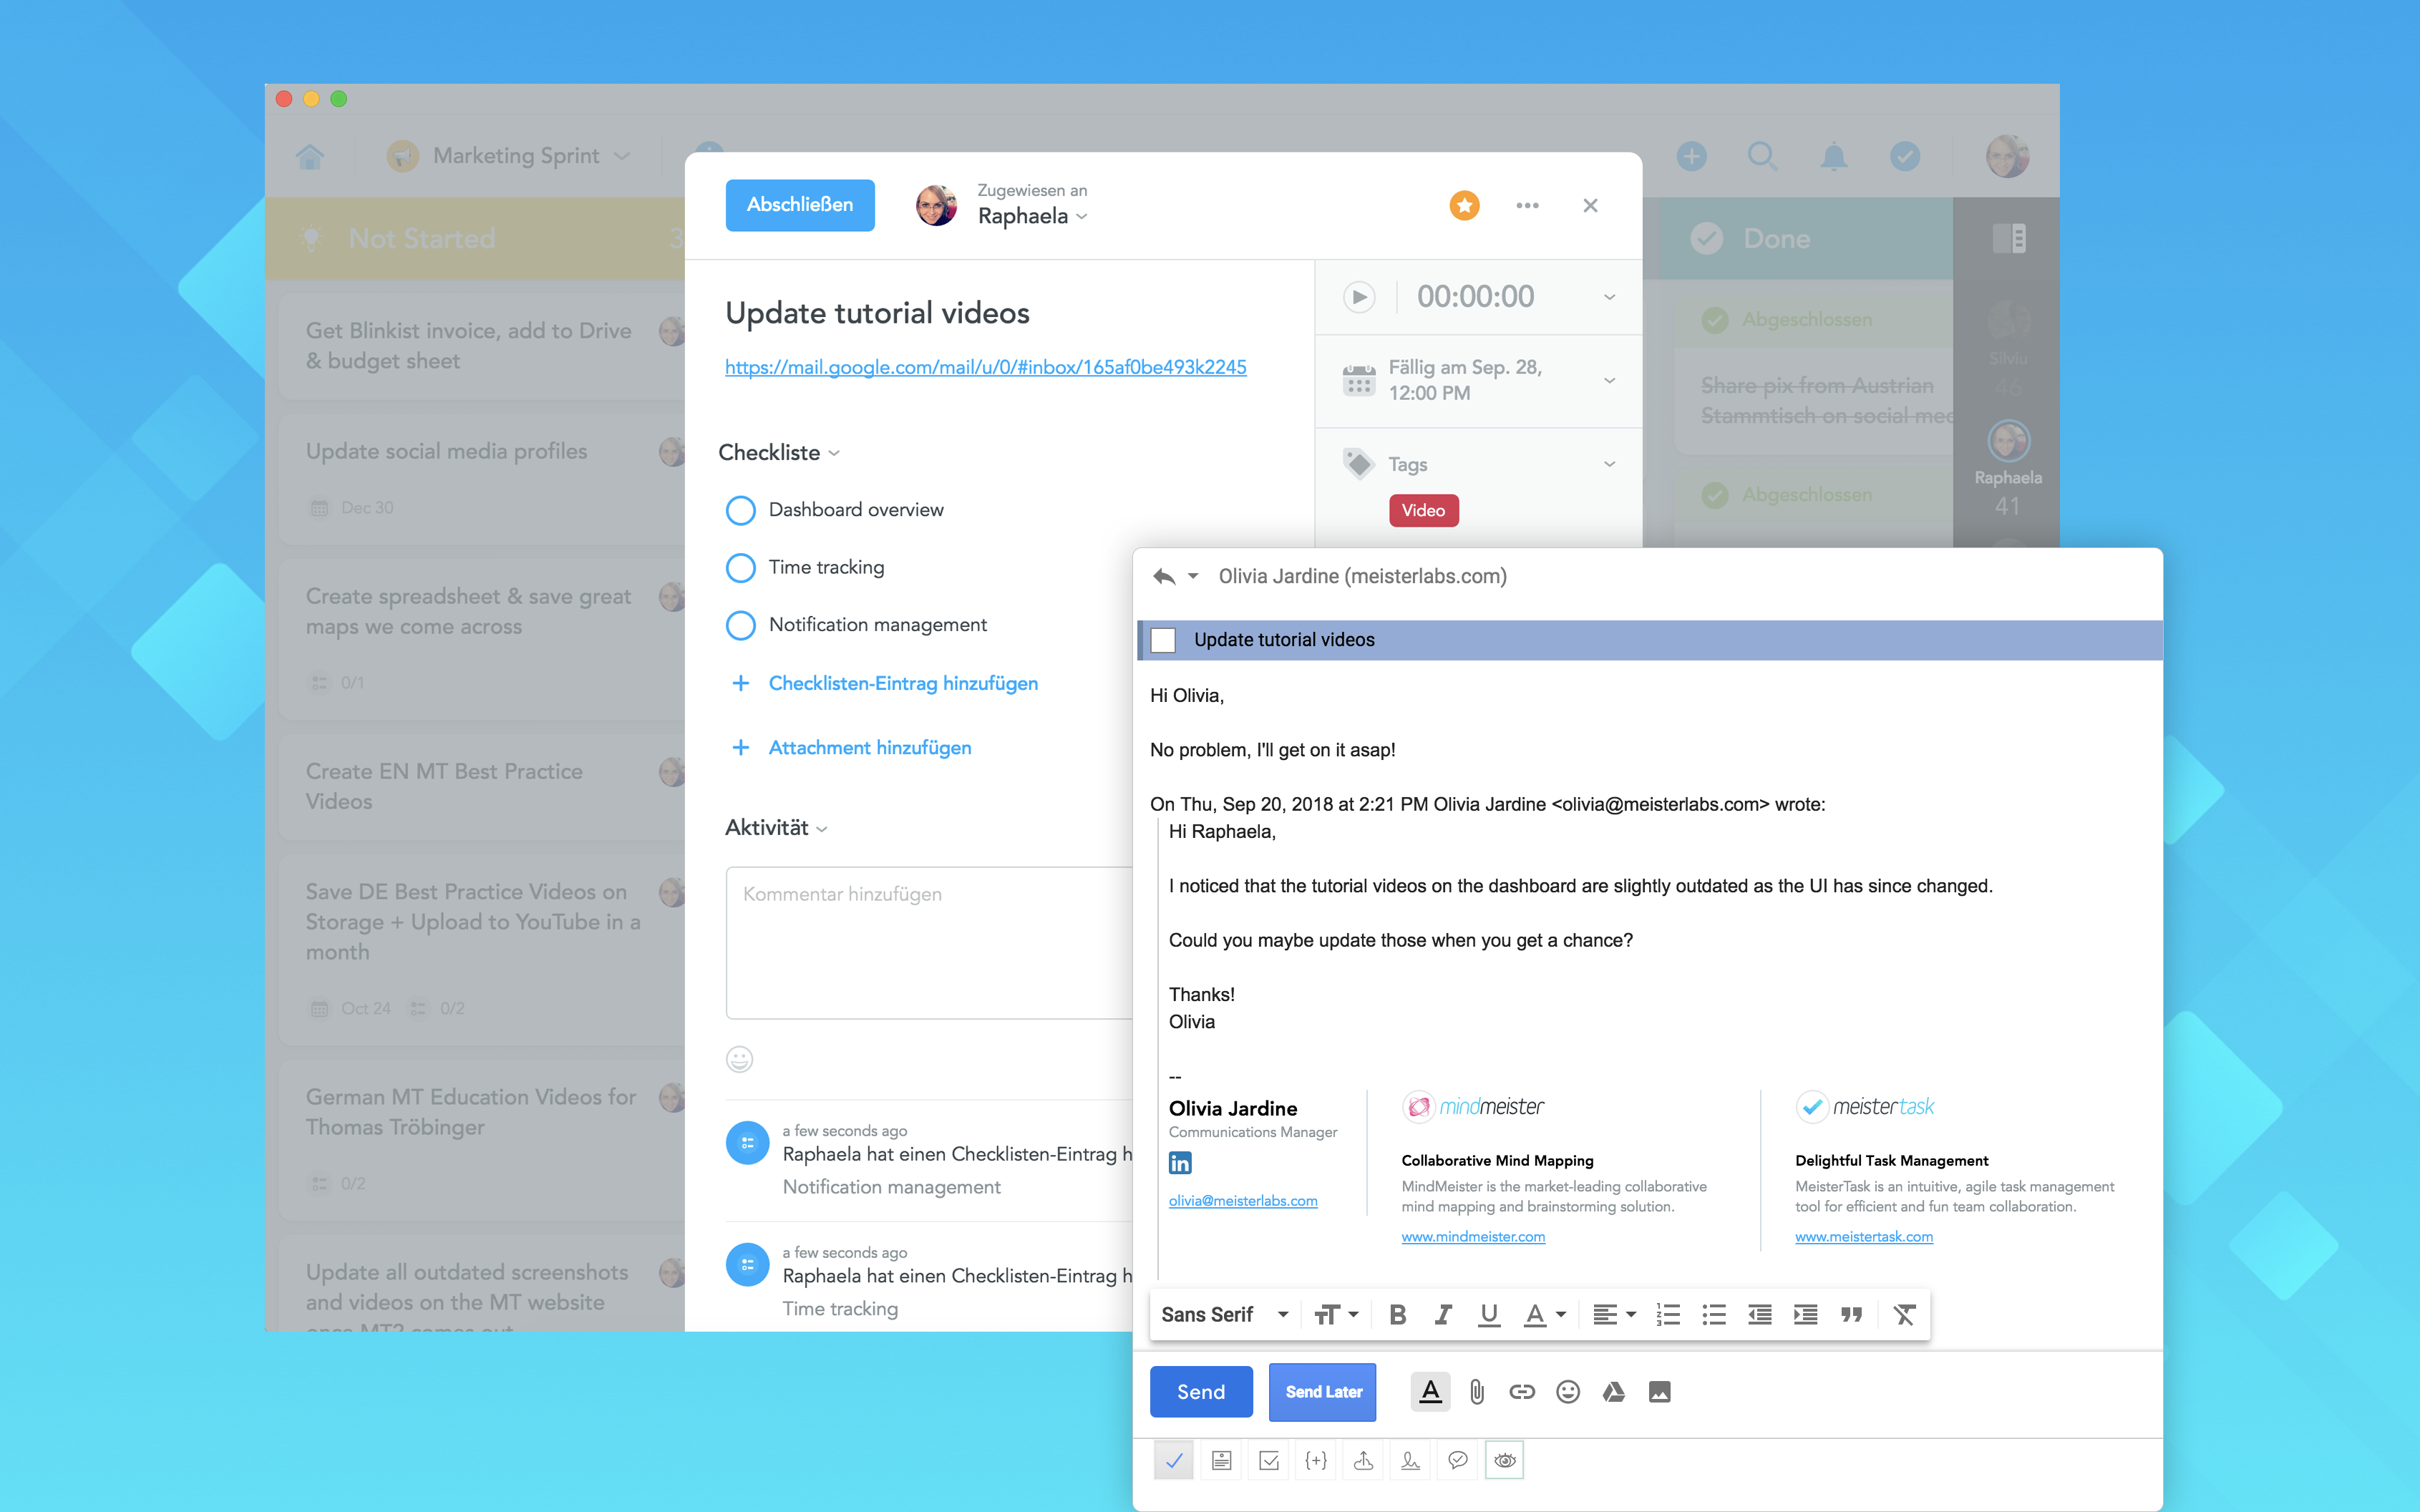 Sync email tasks with MeisterTask projects